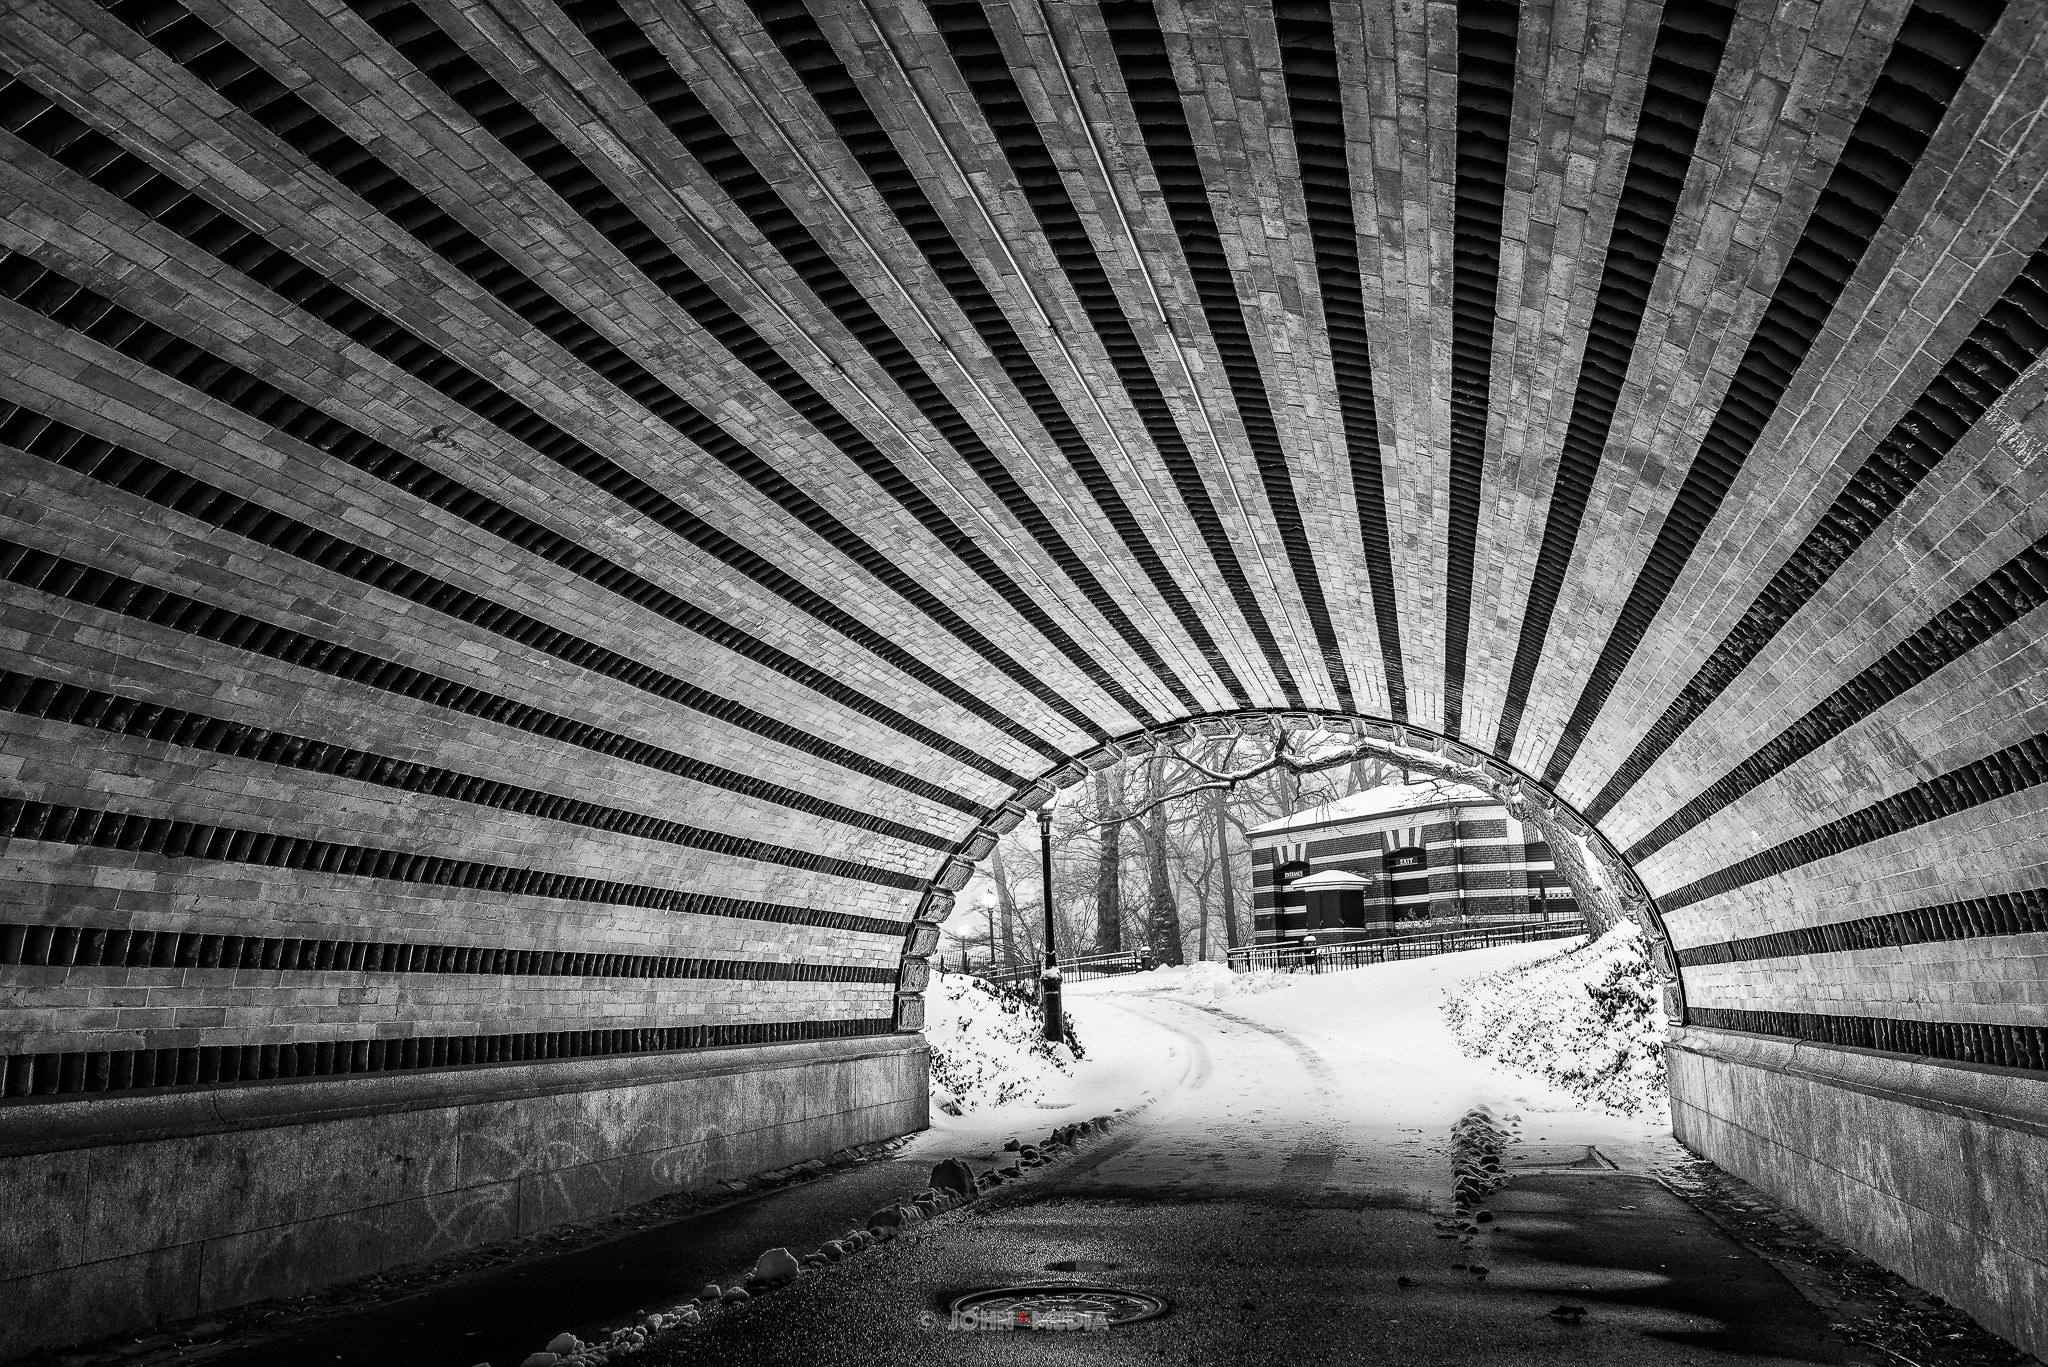 Central Park under the bridge in the January snow